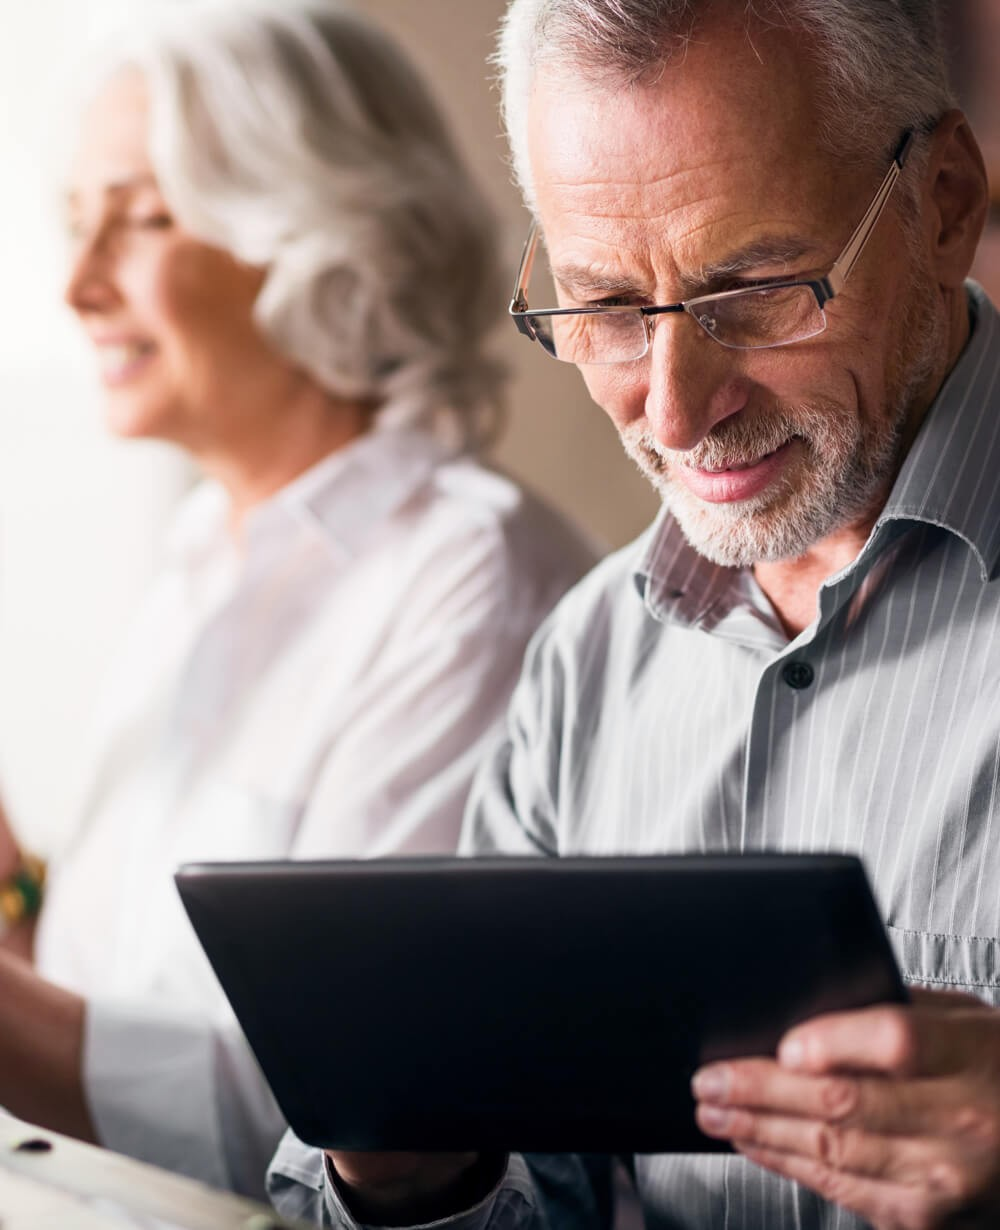 An older couple looks at a tablet computer.